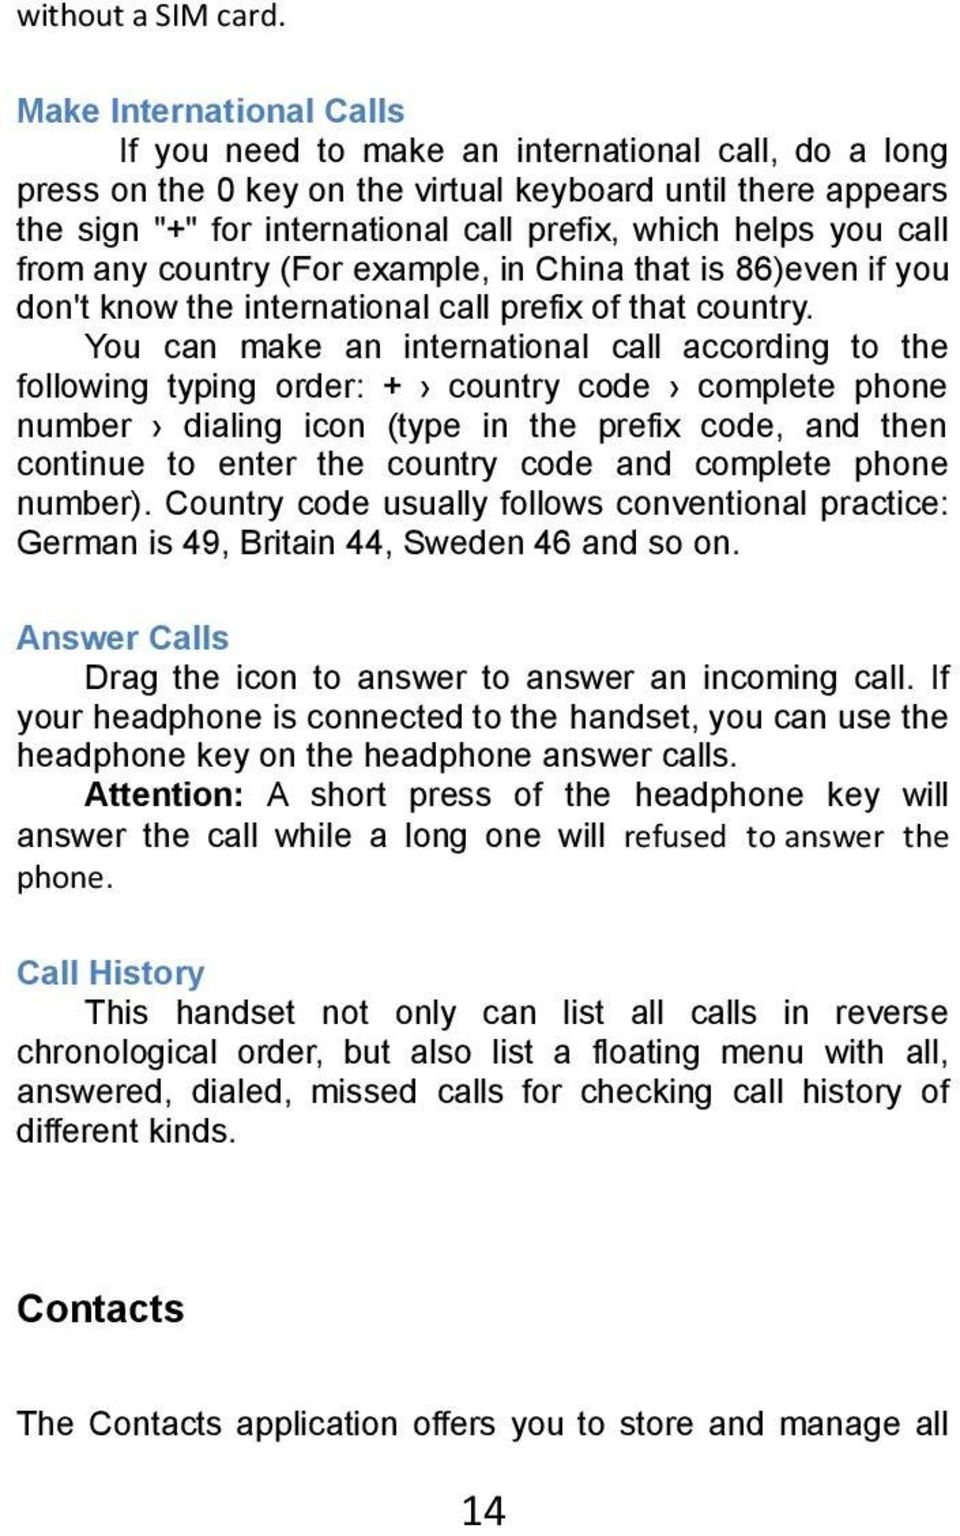 you call from any country (For example, in China that is 86)even if you don't know the international call prefix of that country.